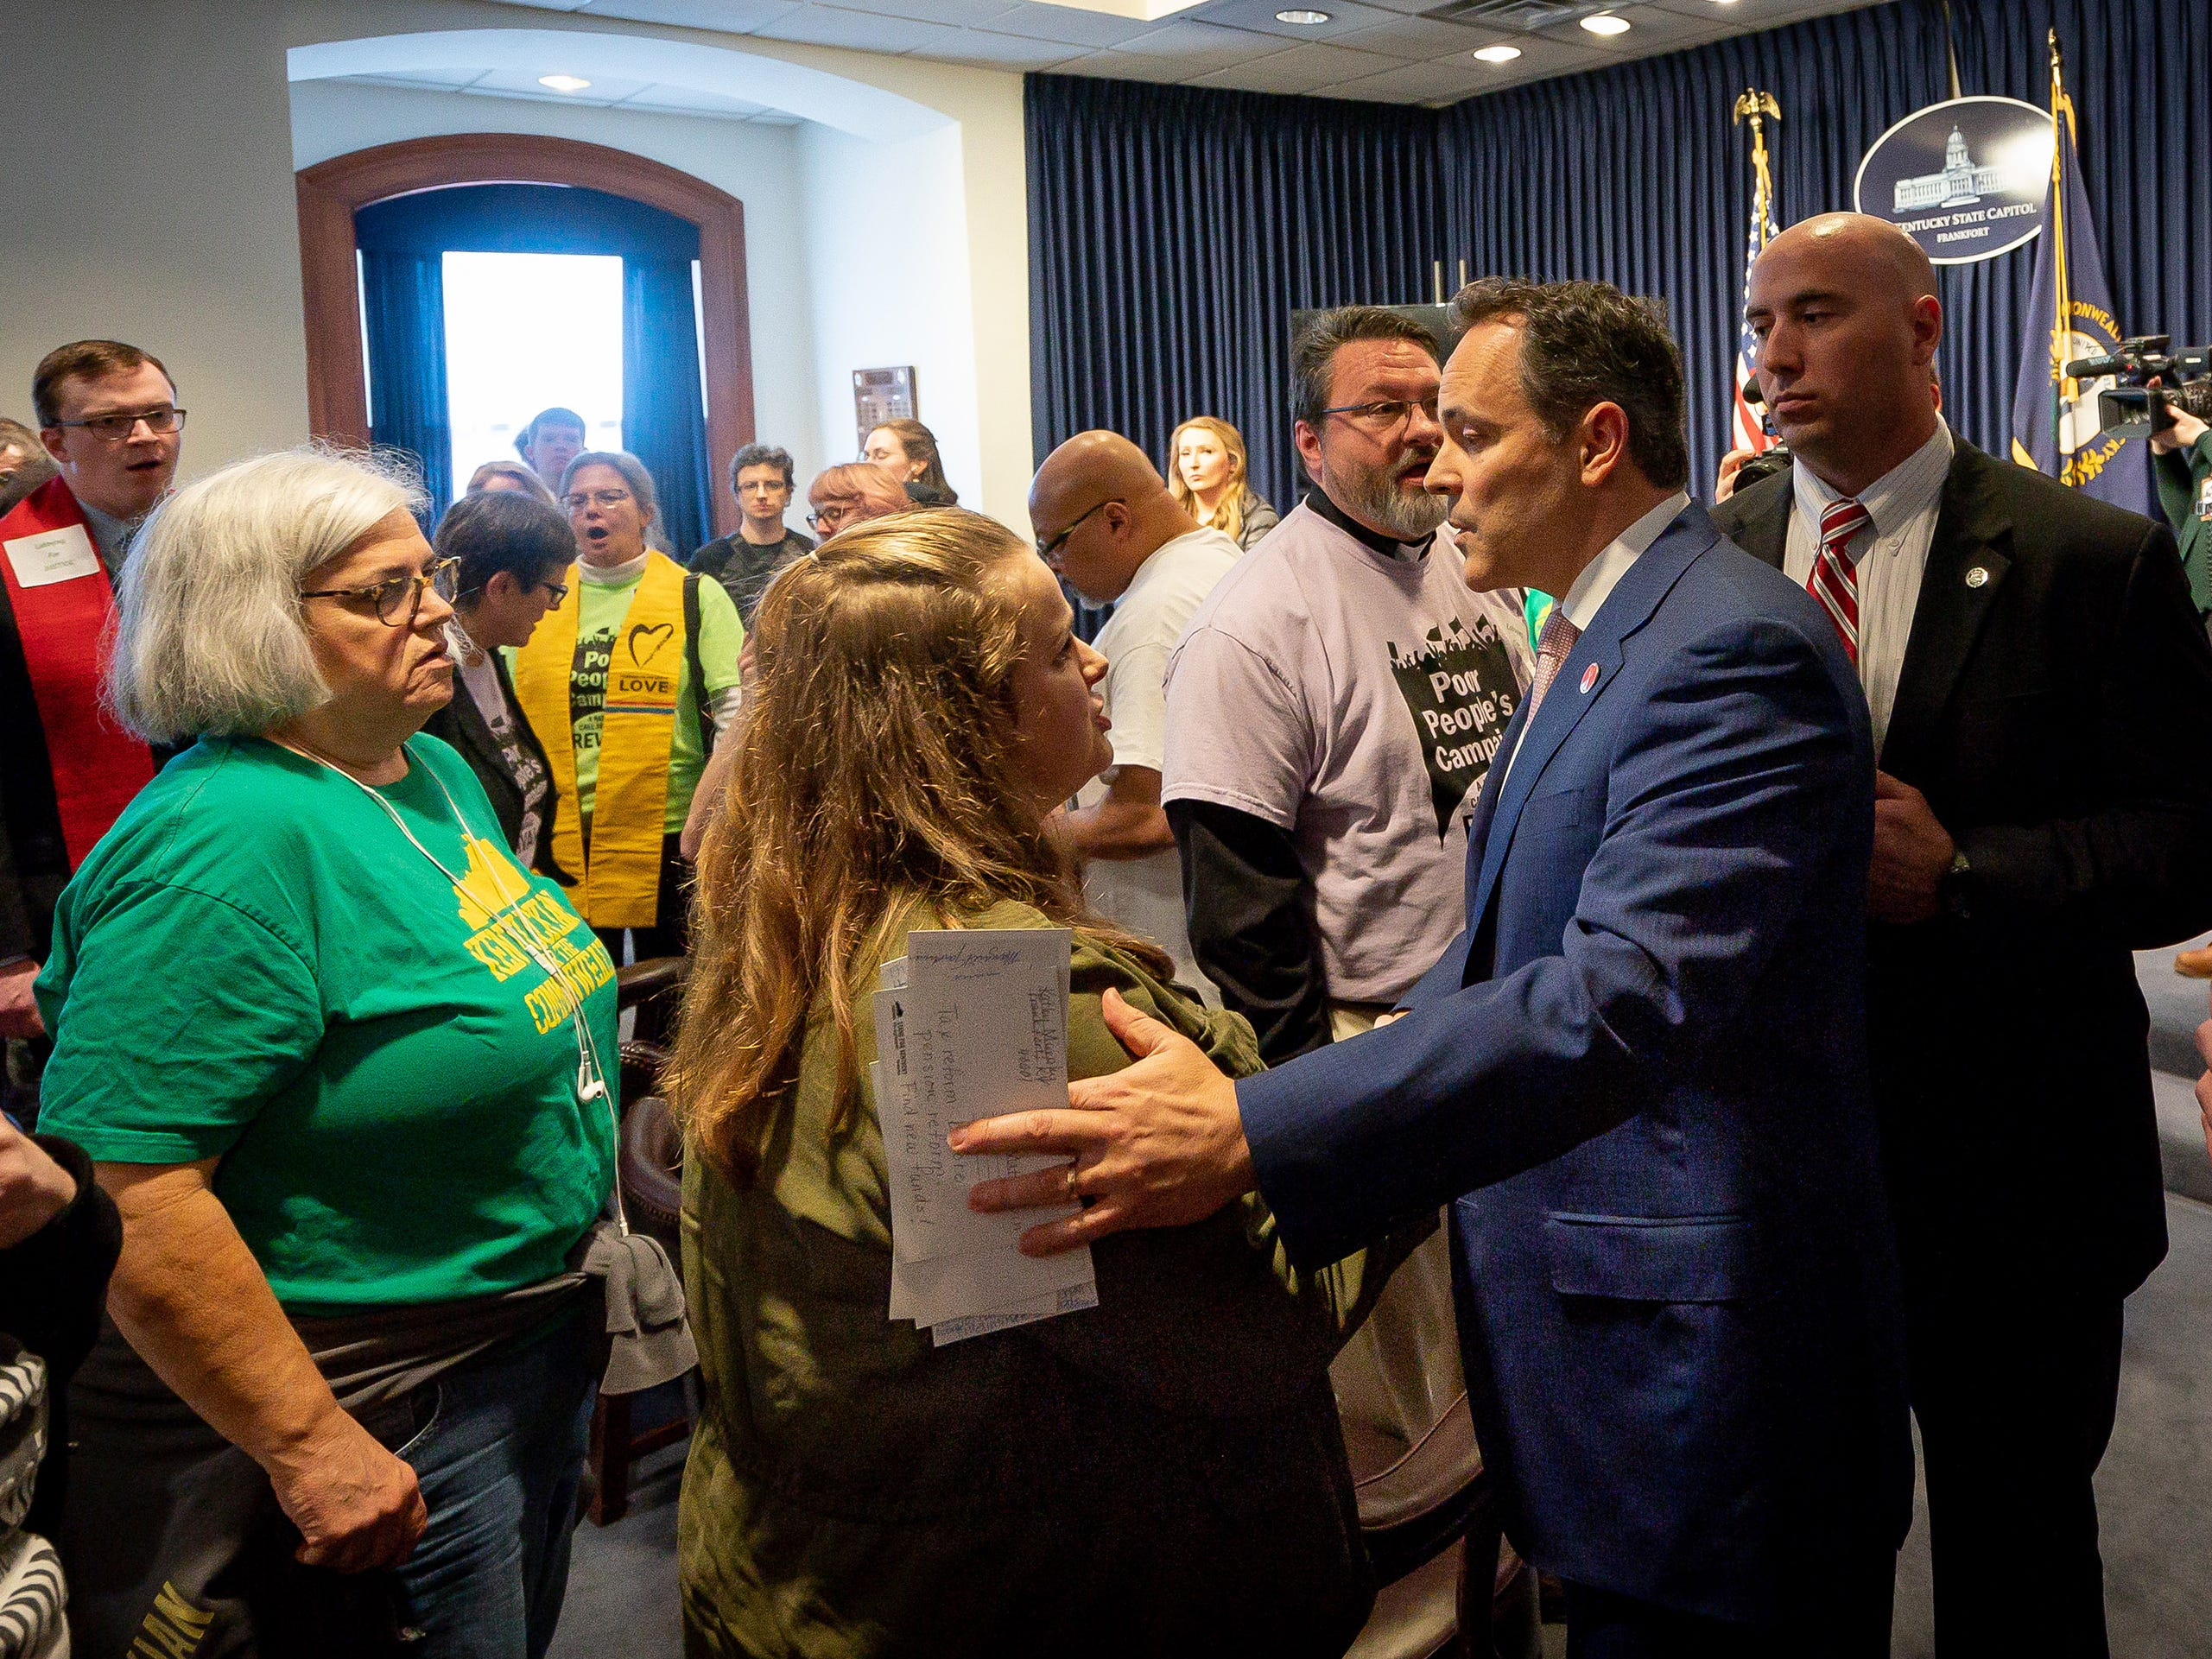 Gov. Matt Bevin greets members of the Kentucky Poor People's Campaign at the Capitol building in Frankfort, Ky, Tuesday, Feb. 5, 2018